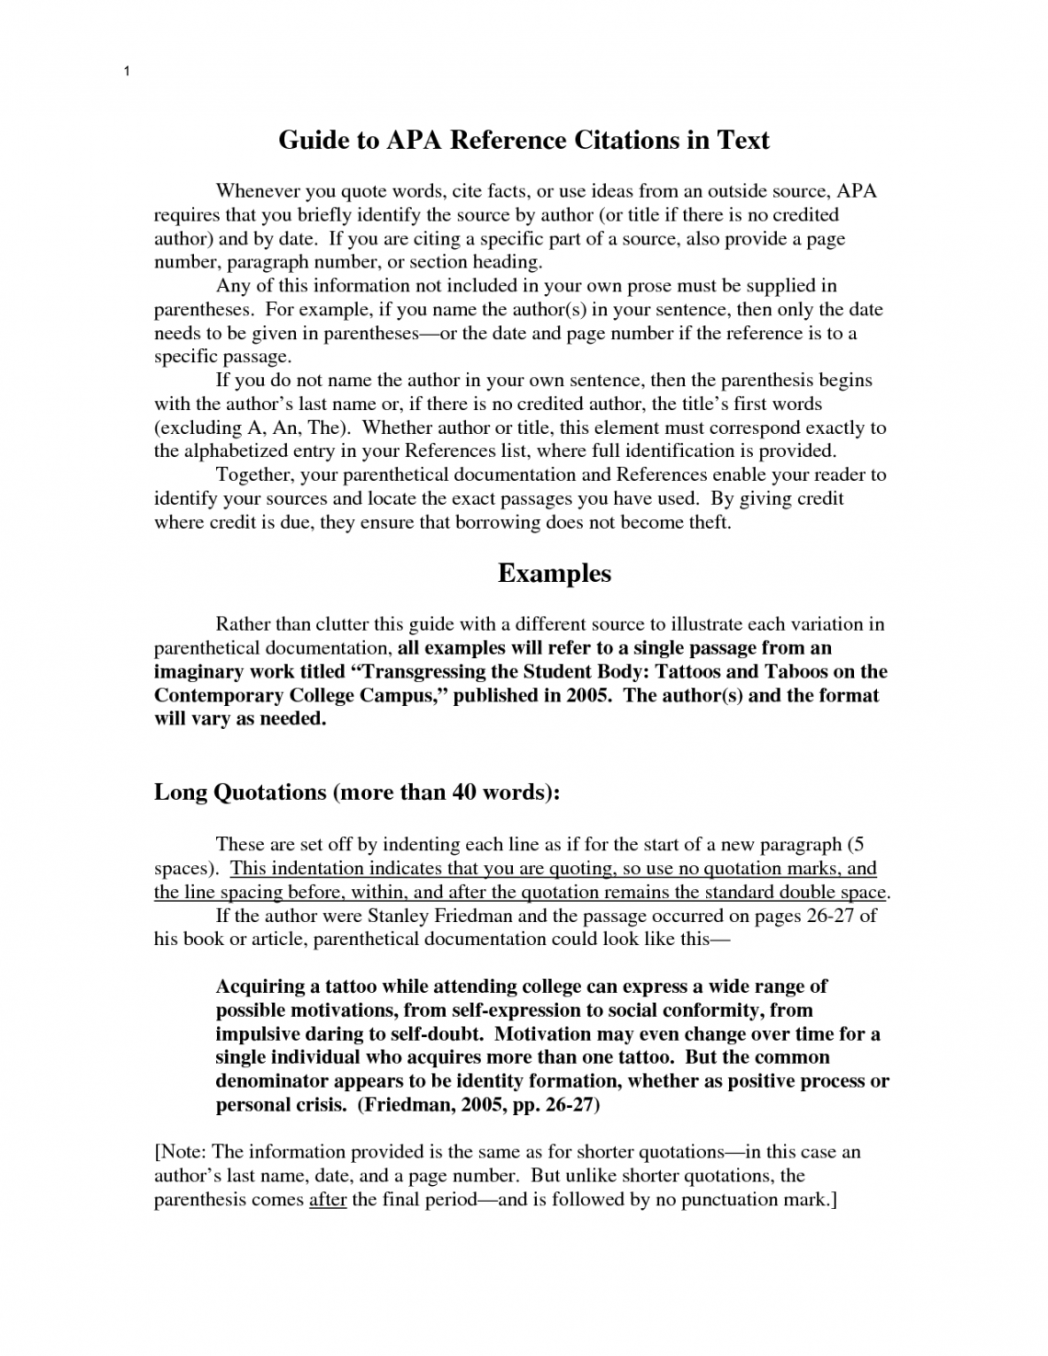 009 Using Quotes In An Essay Format Quotation Starting With Quote Beginning Explanatory Sample 1048x1356 Impressive A College Can You Start Argumentative Full